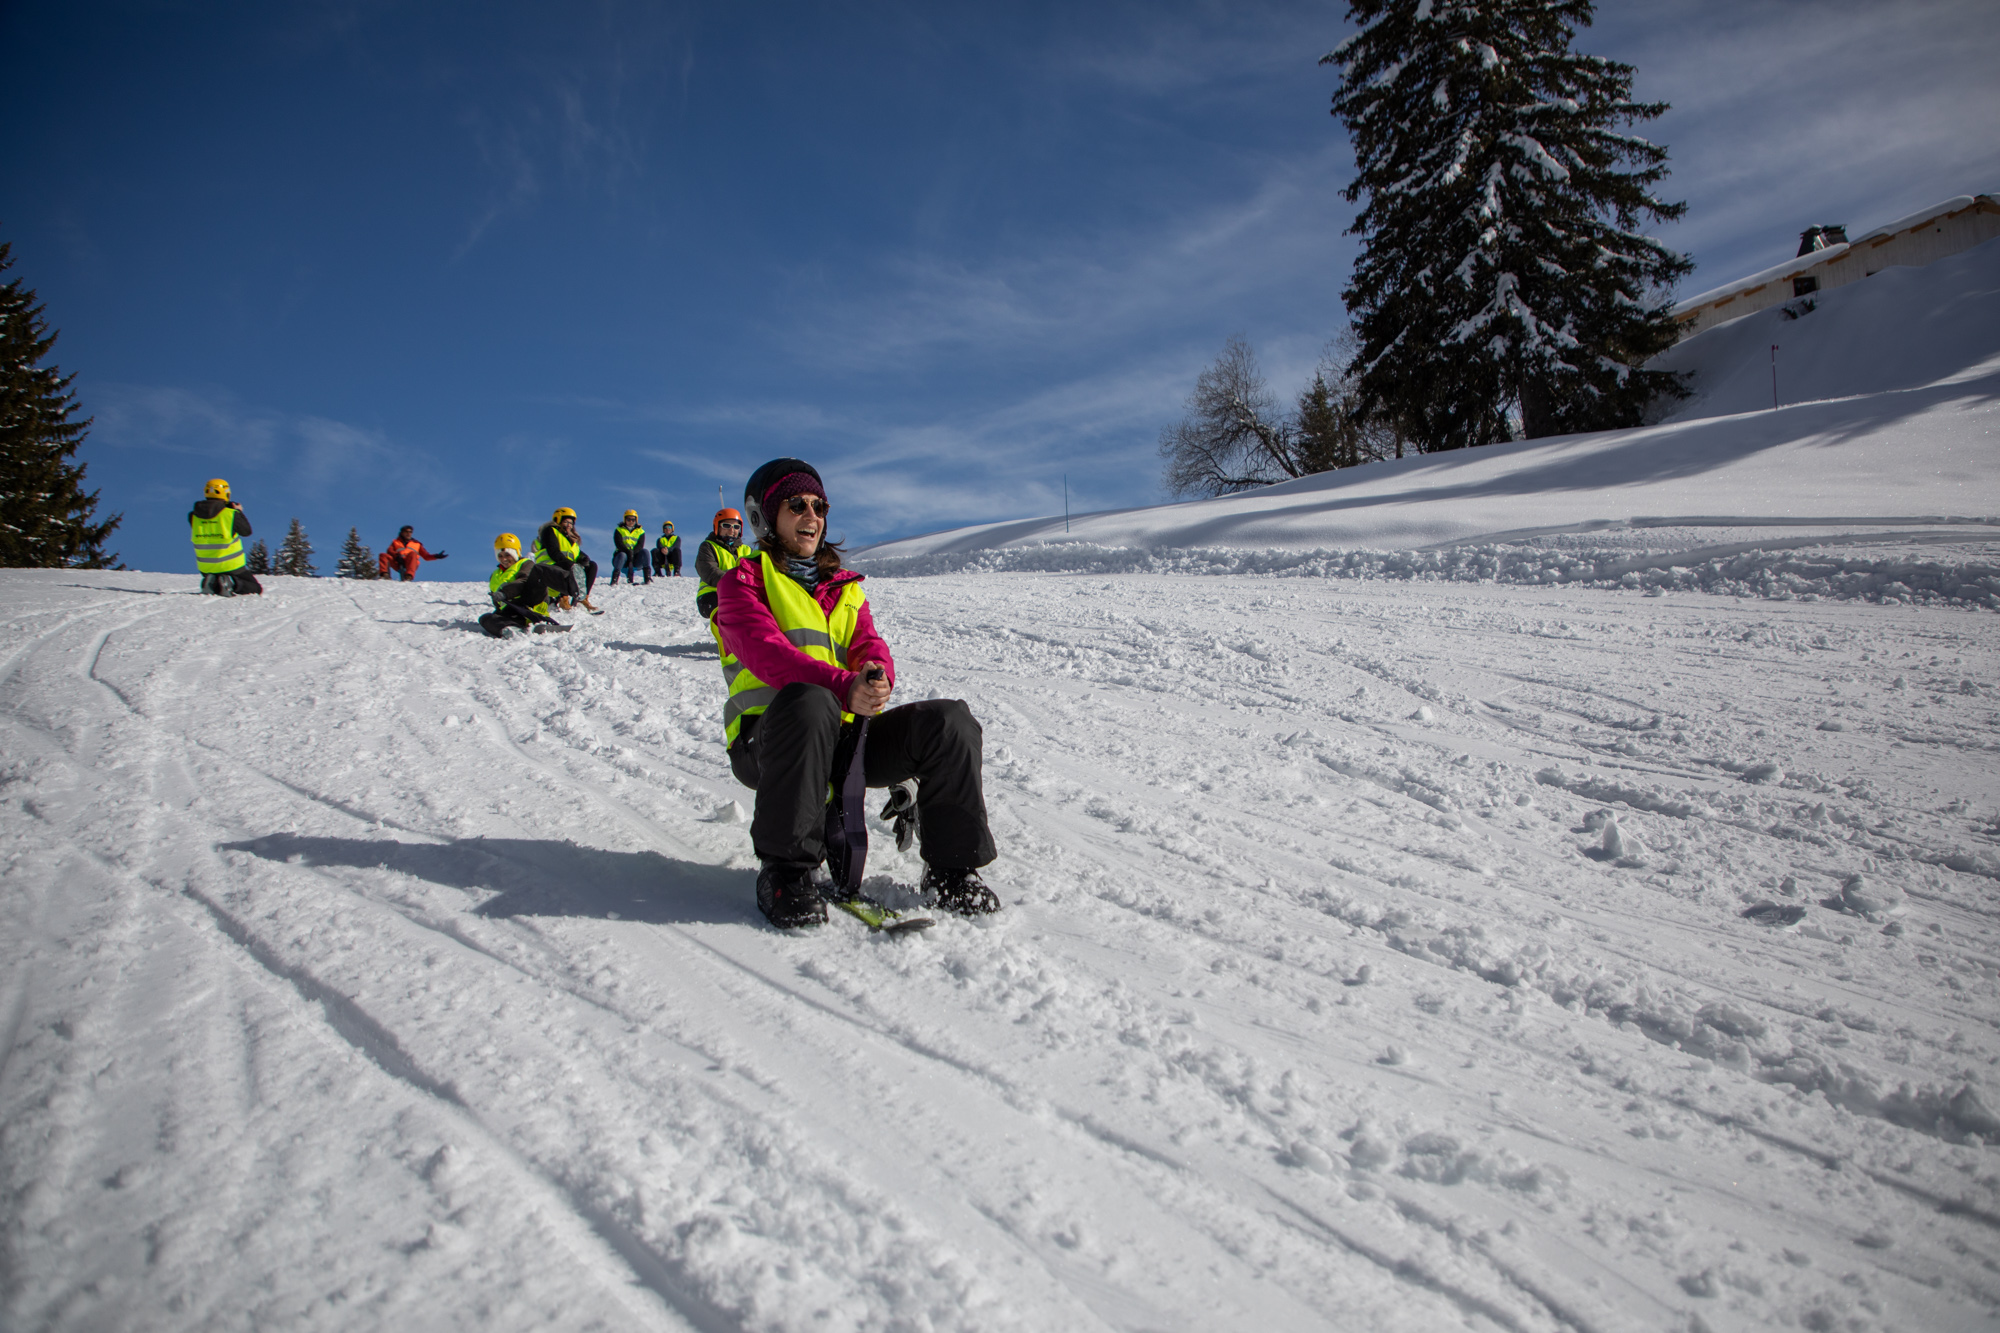 Break_The_Ice_LaClusaz_2019_web-7210.jpg